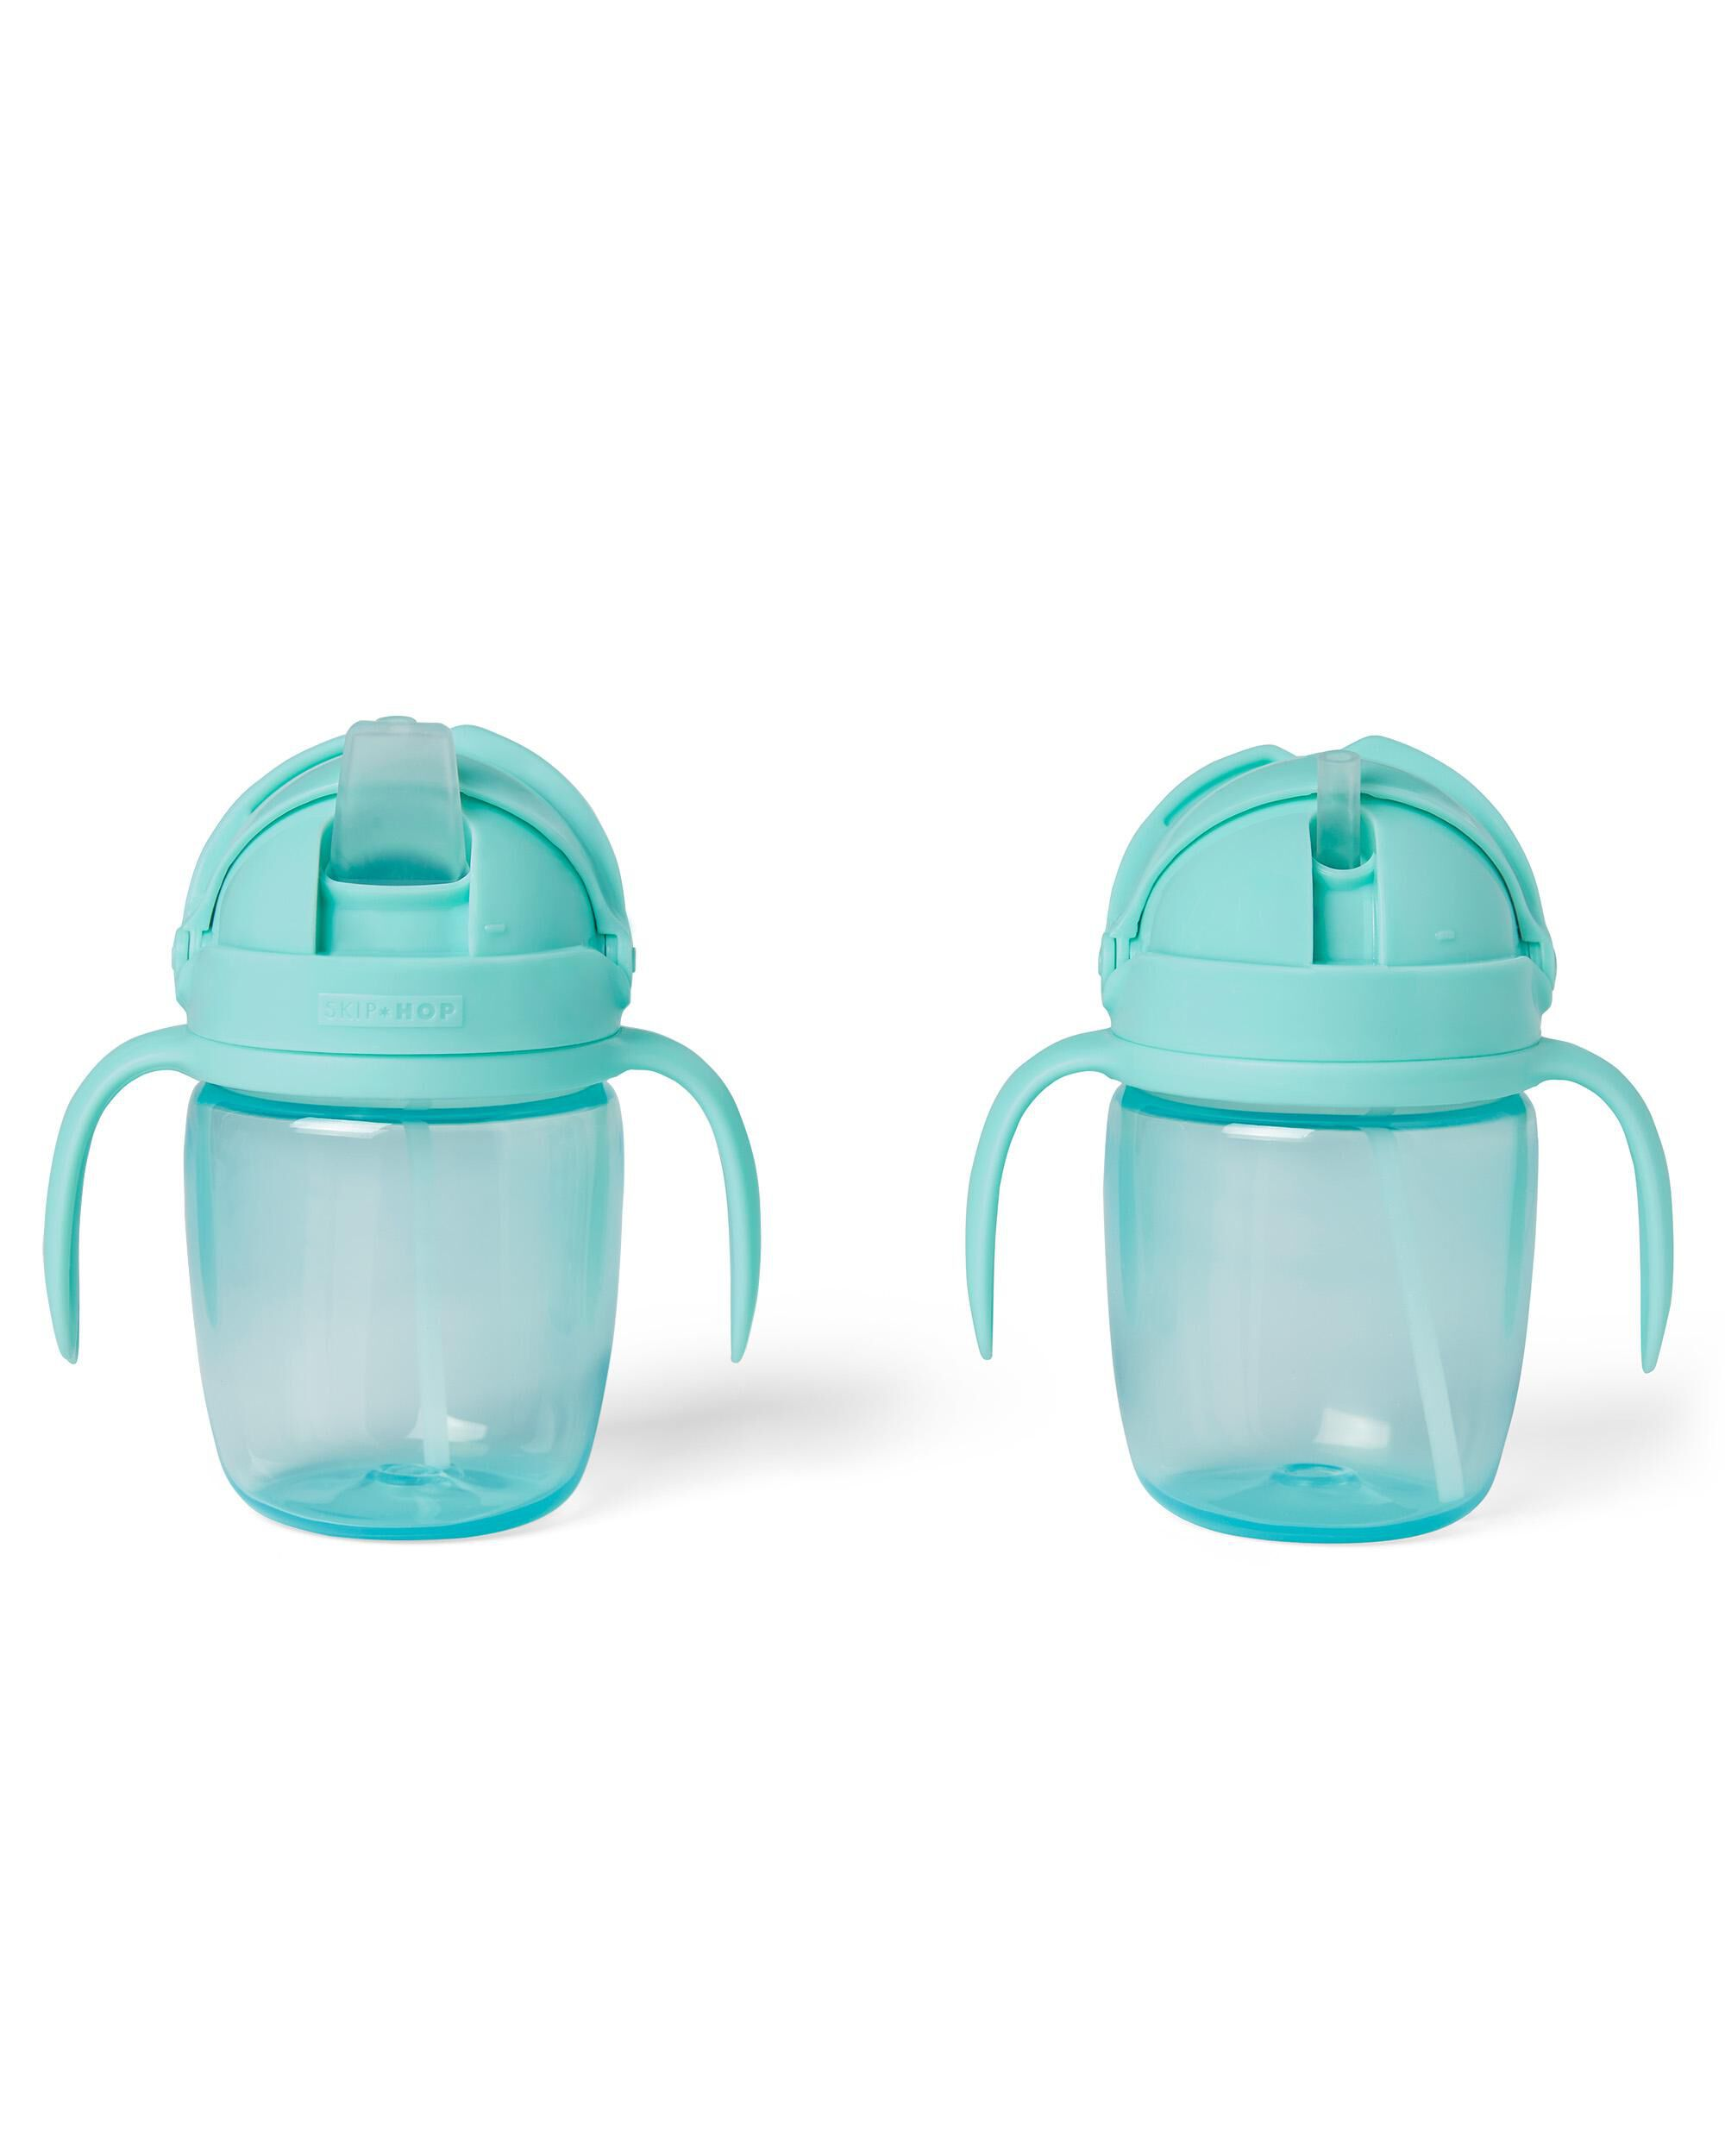 Carters Sip-To-Straw Cups